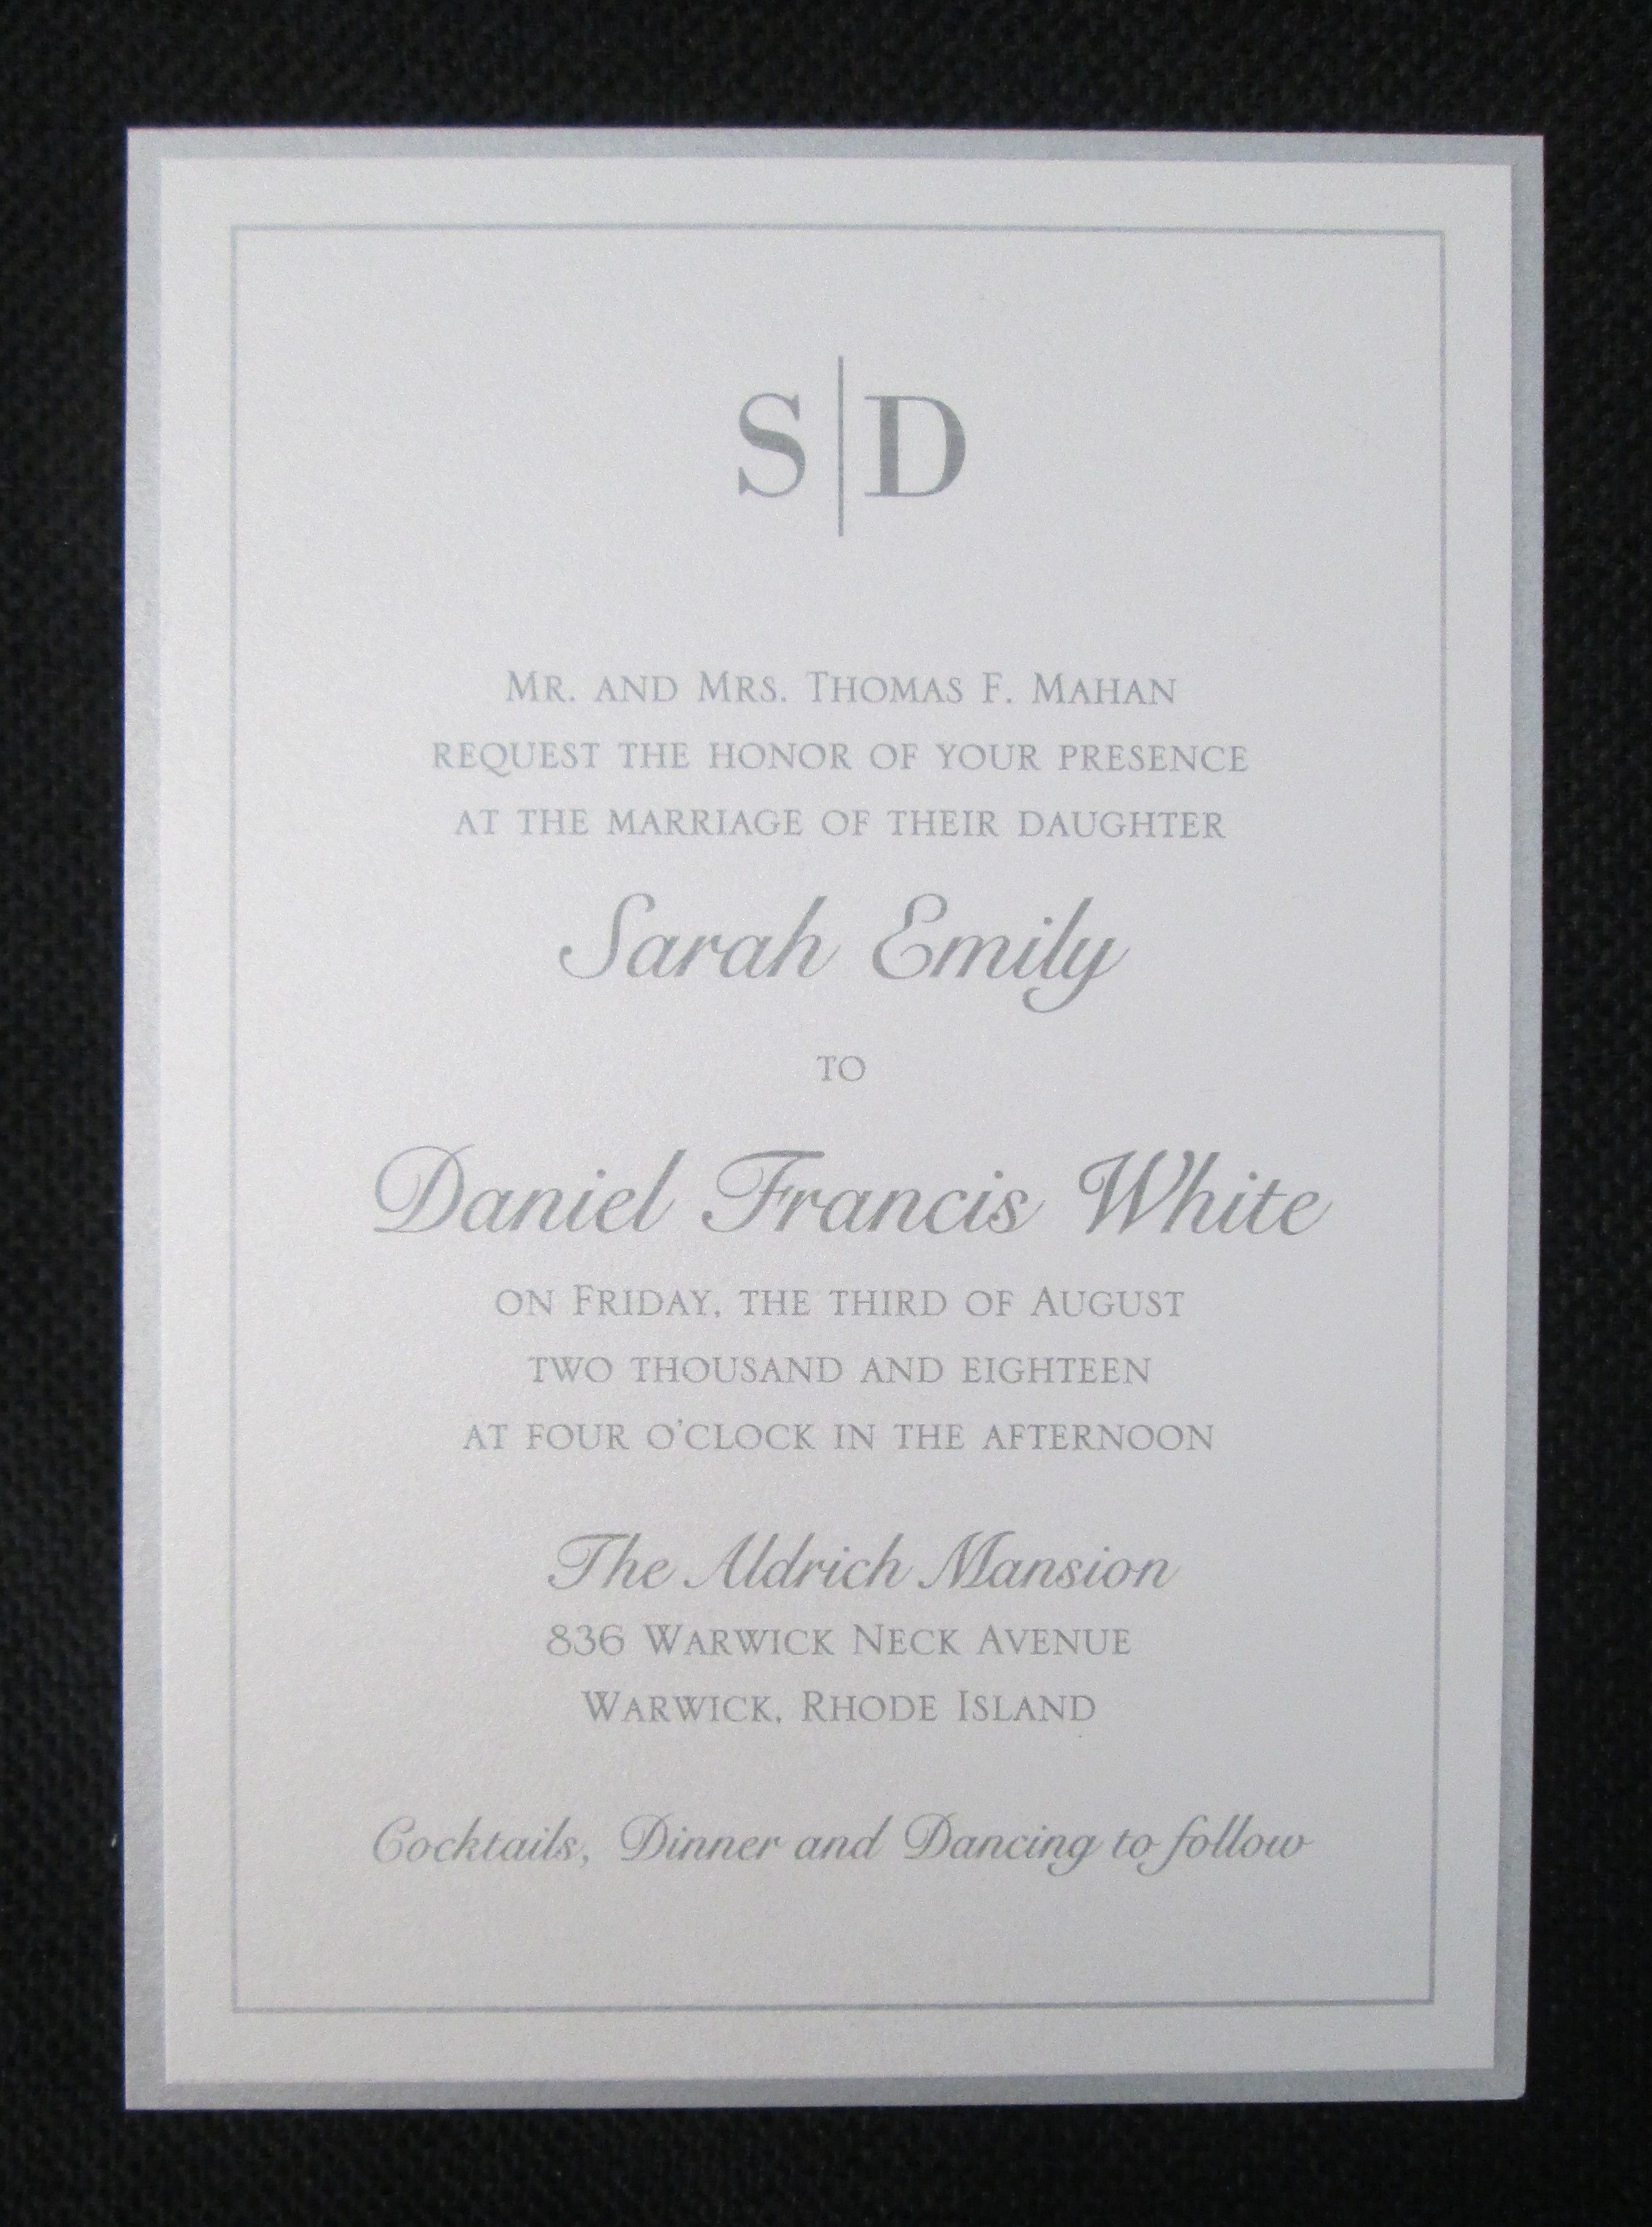 Double Layer Invitation With Monogram Making Wedding Invitations Day Pi: Pi Day Wedding Cards At Websimilar.org